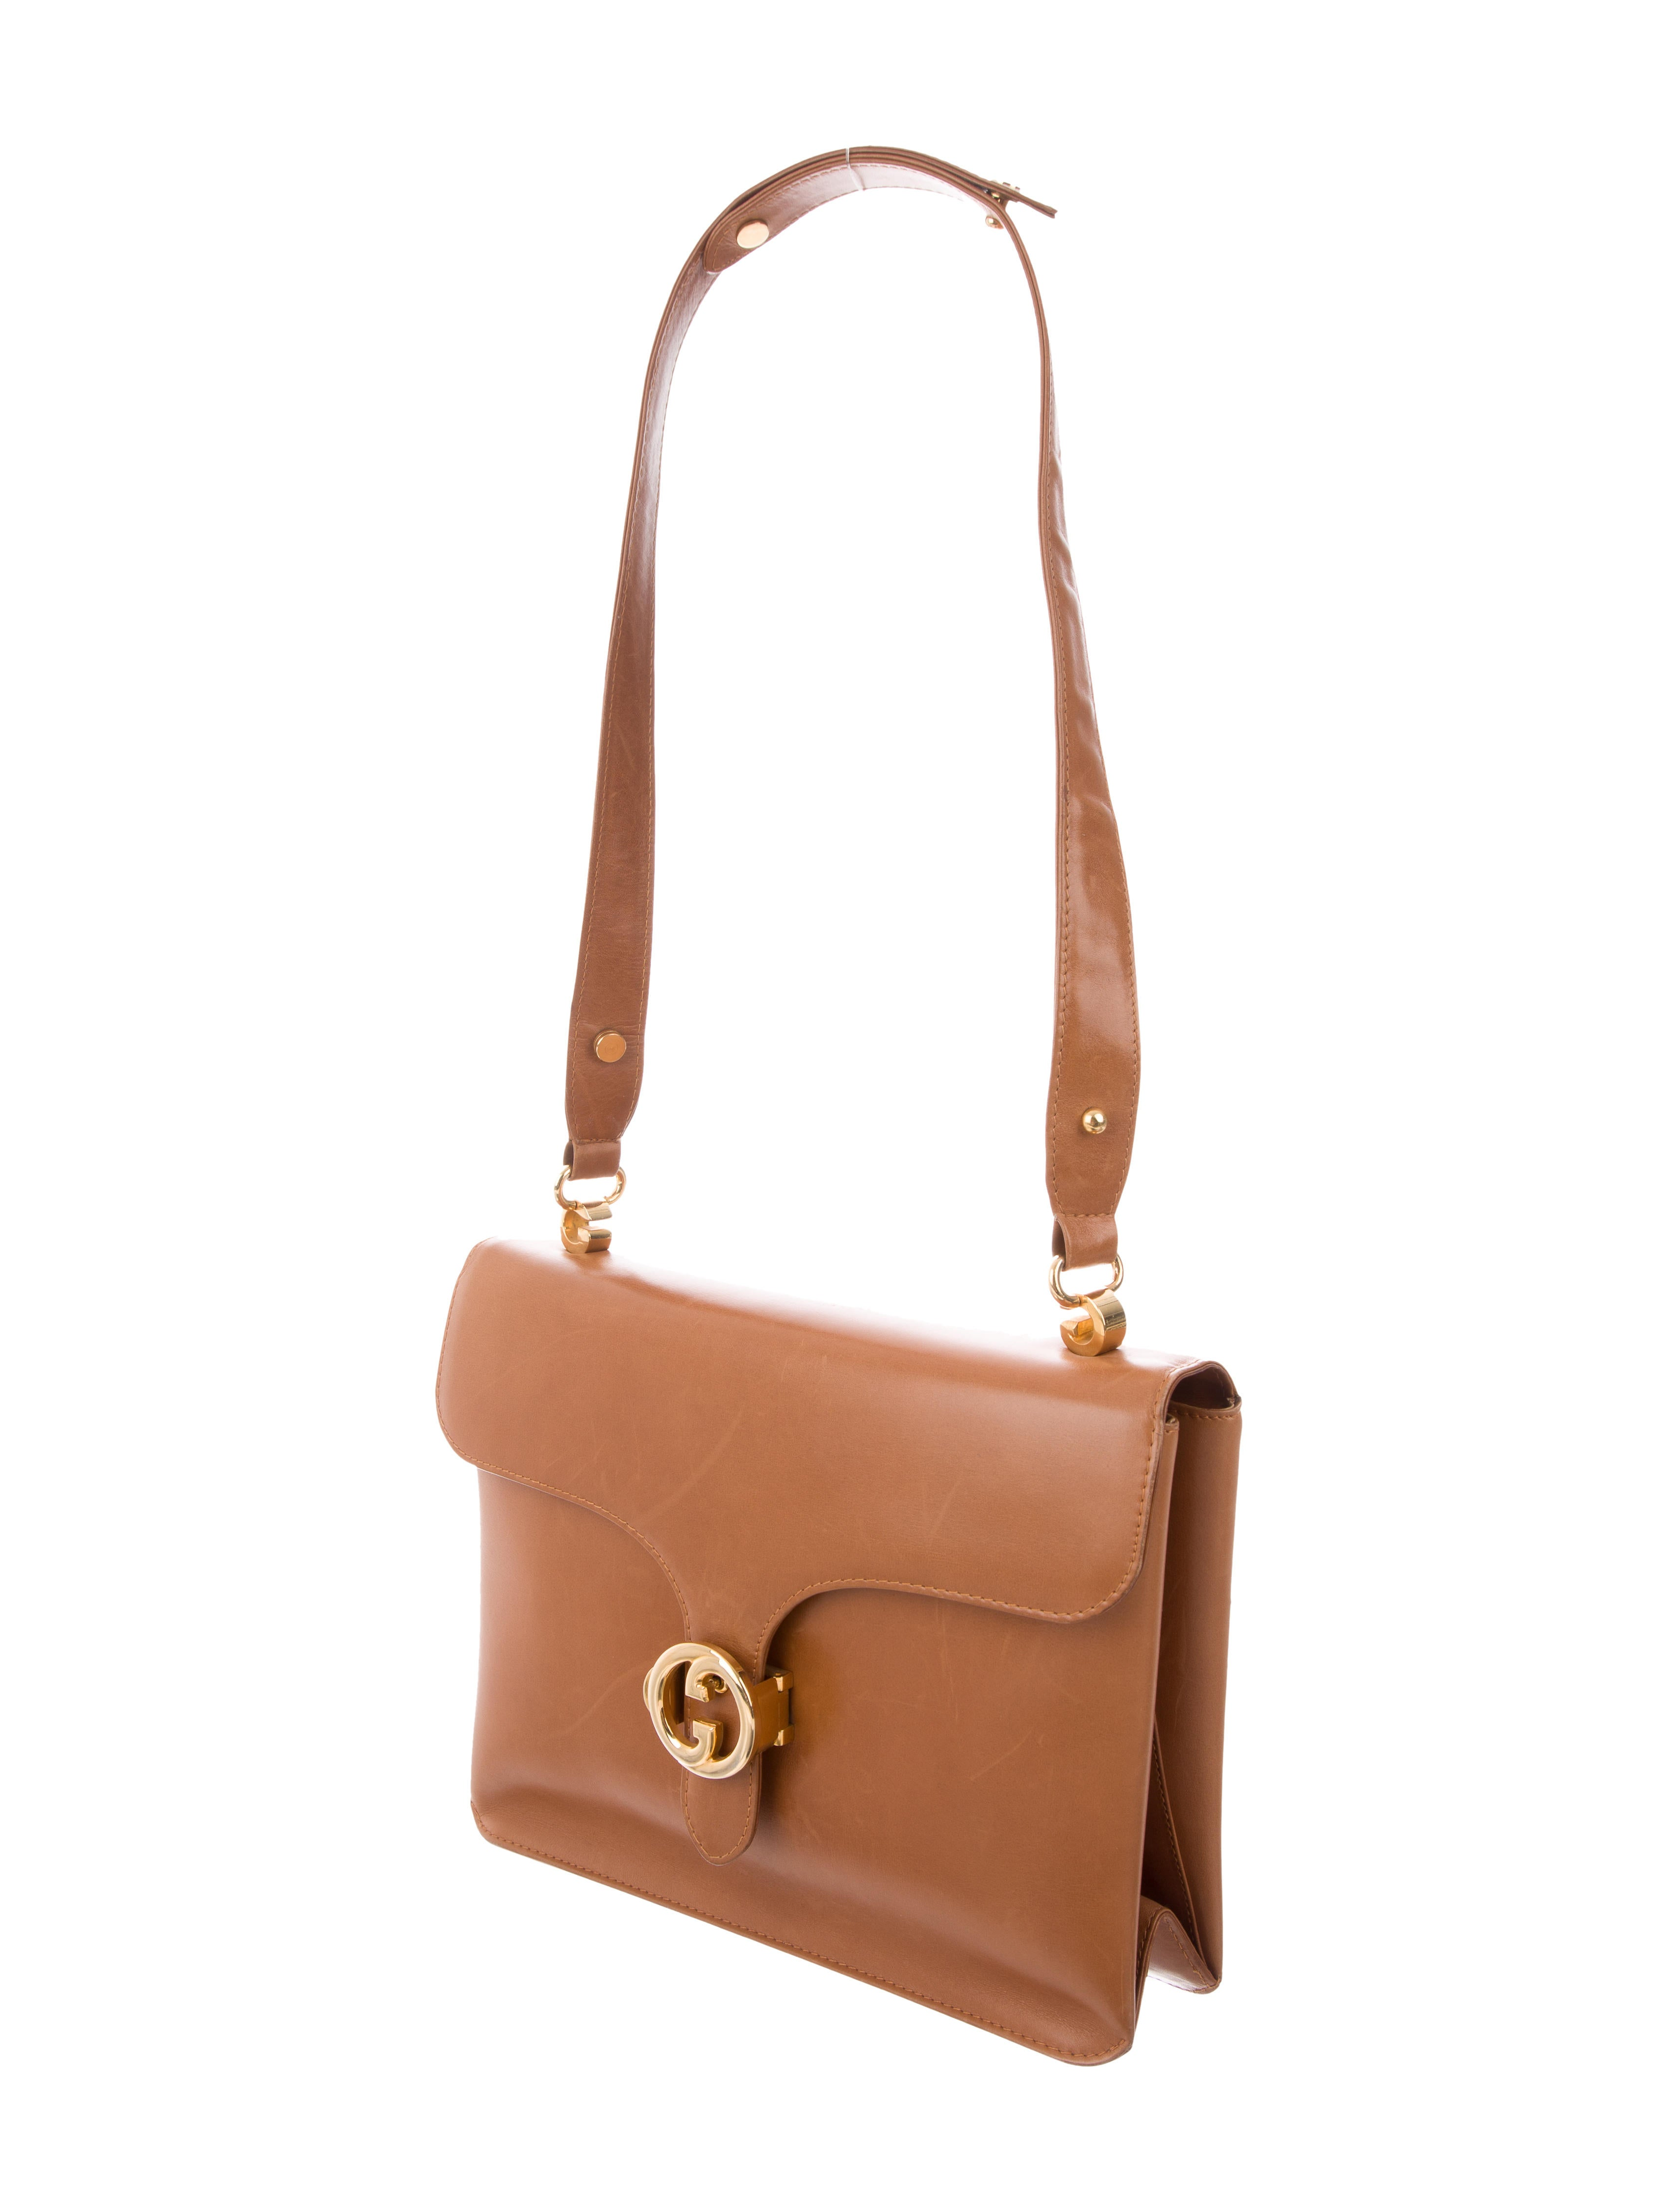 0f1c41047d7e Vintage Leather Gucci Bag - R90659   Stanford Center for Opportunity ...